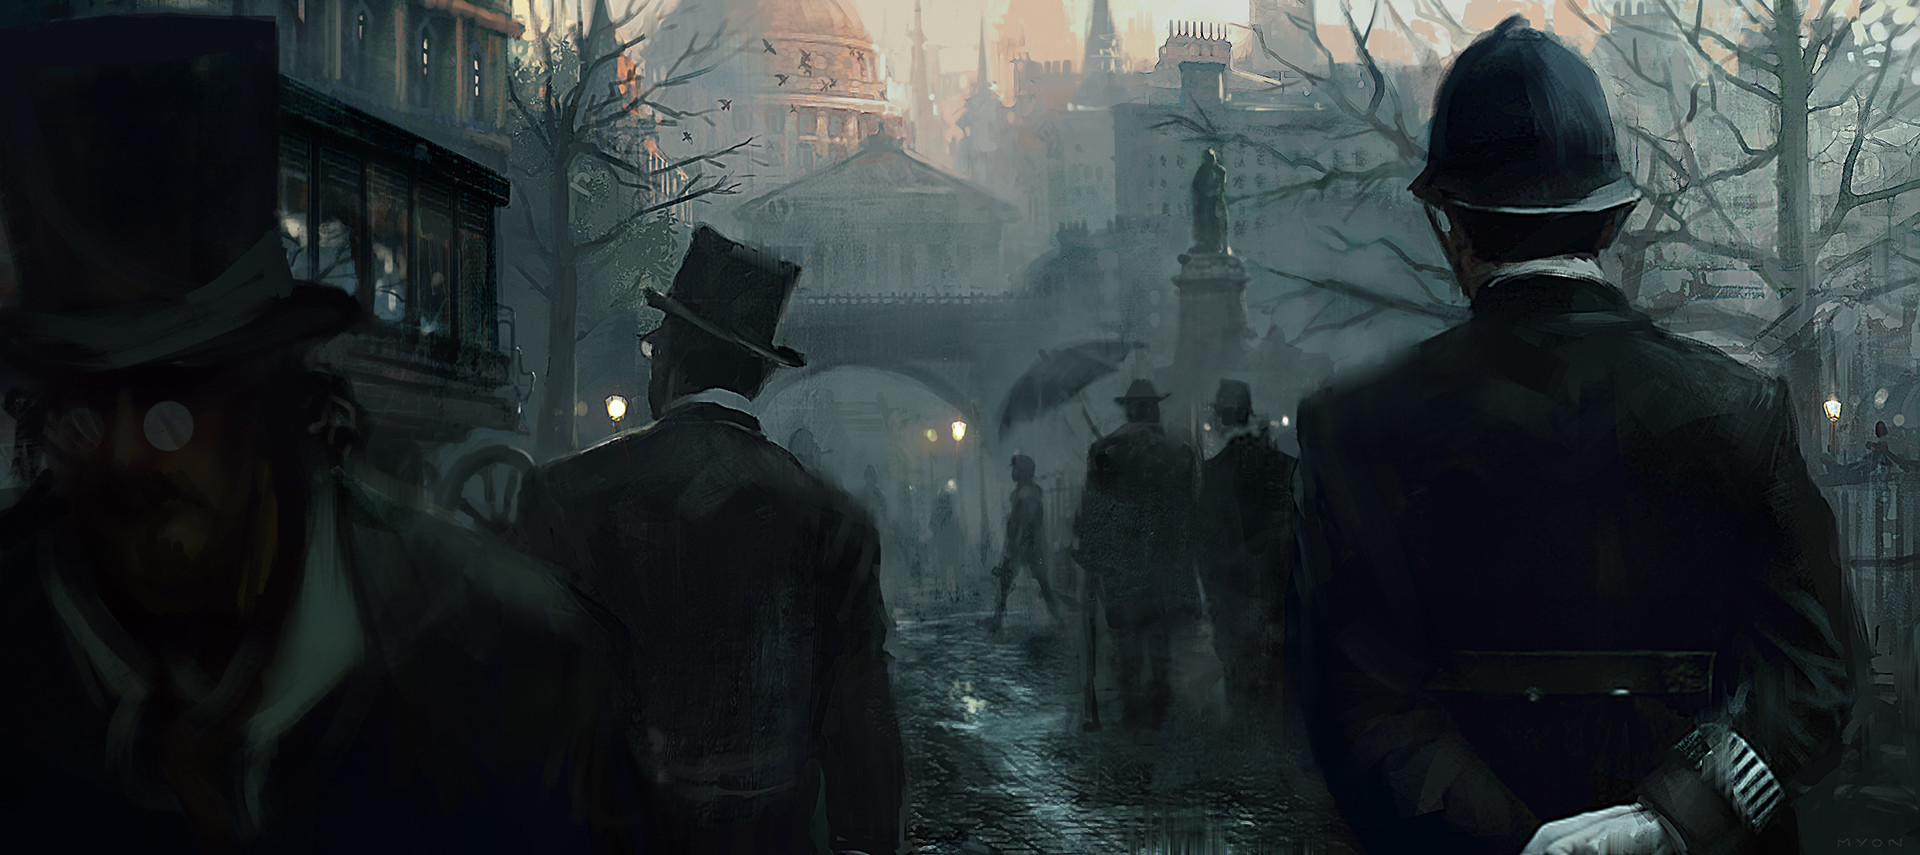 Assassin's Creed Syndicate: Jack the Ripper Concept Art by